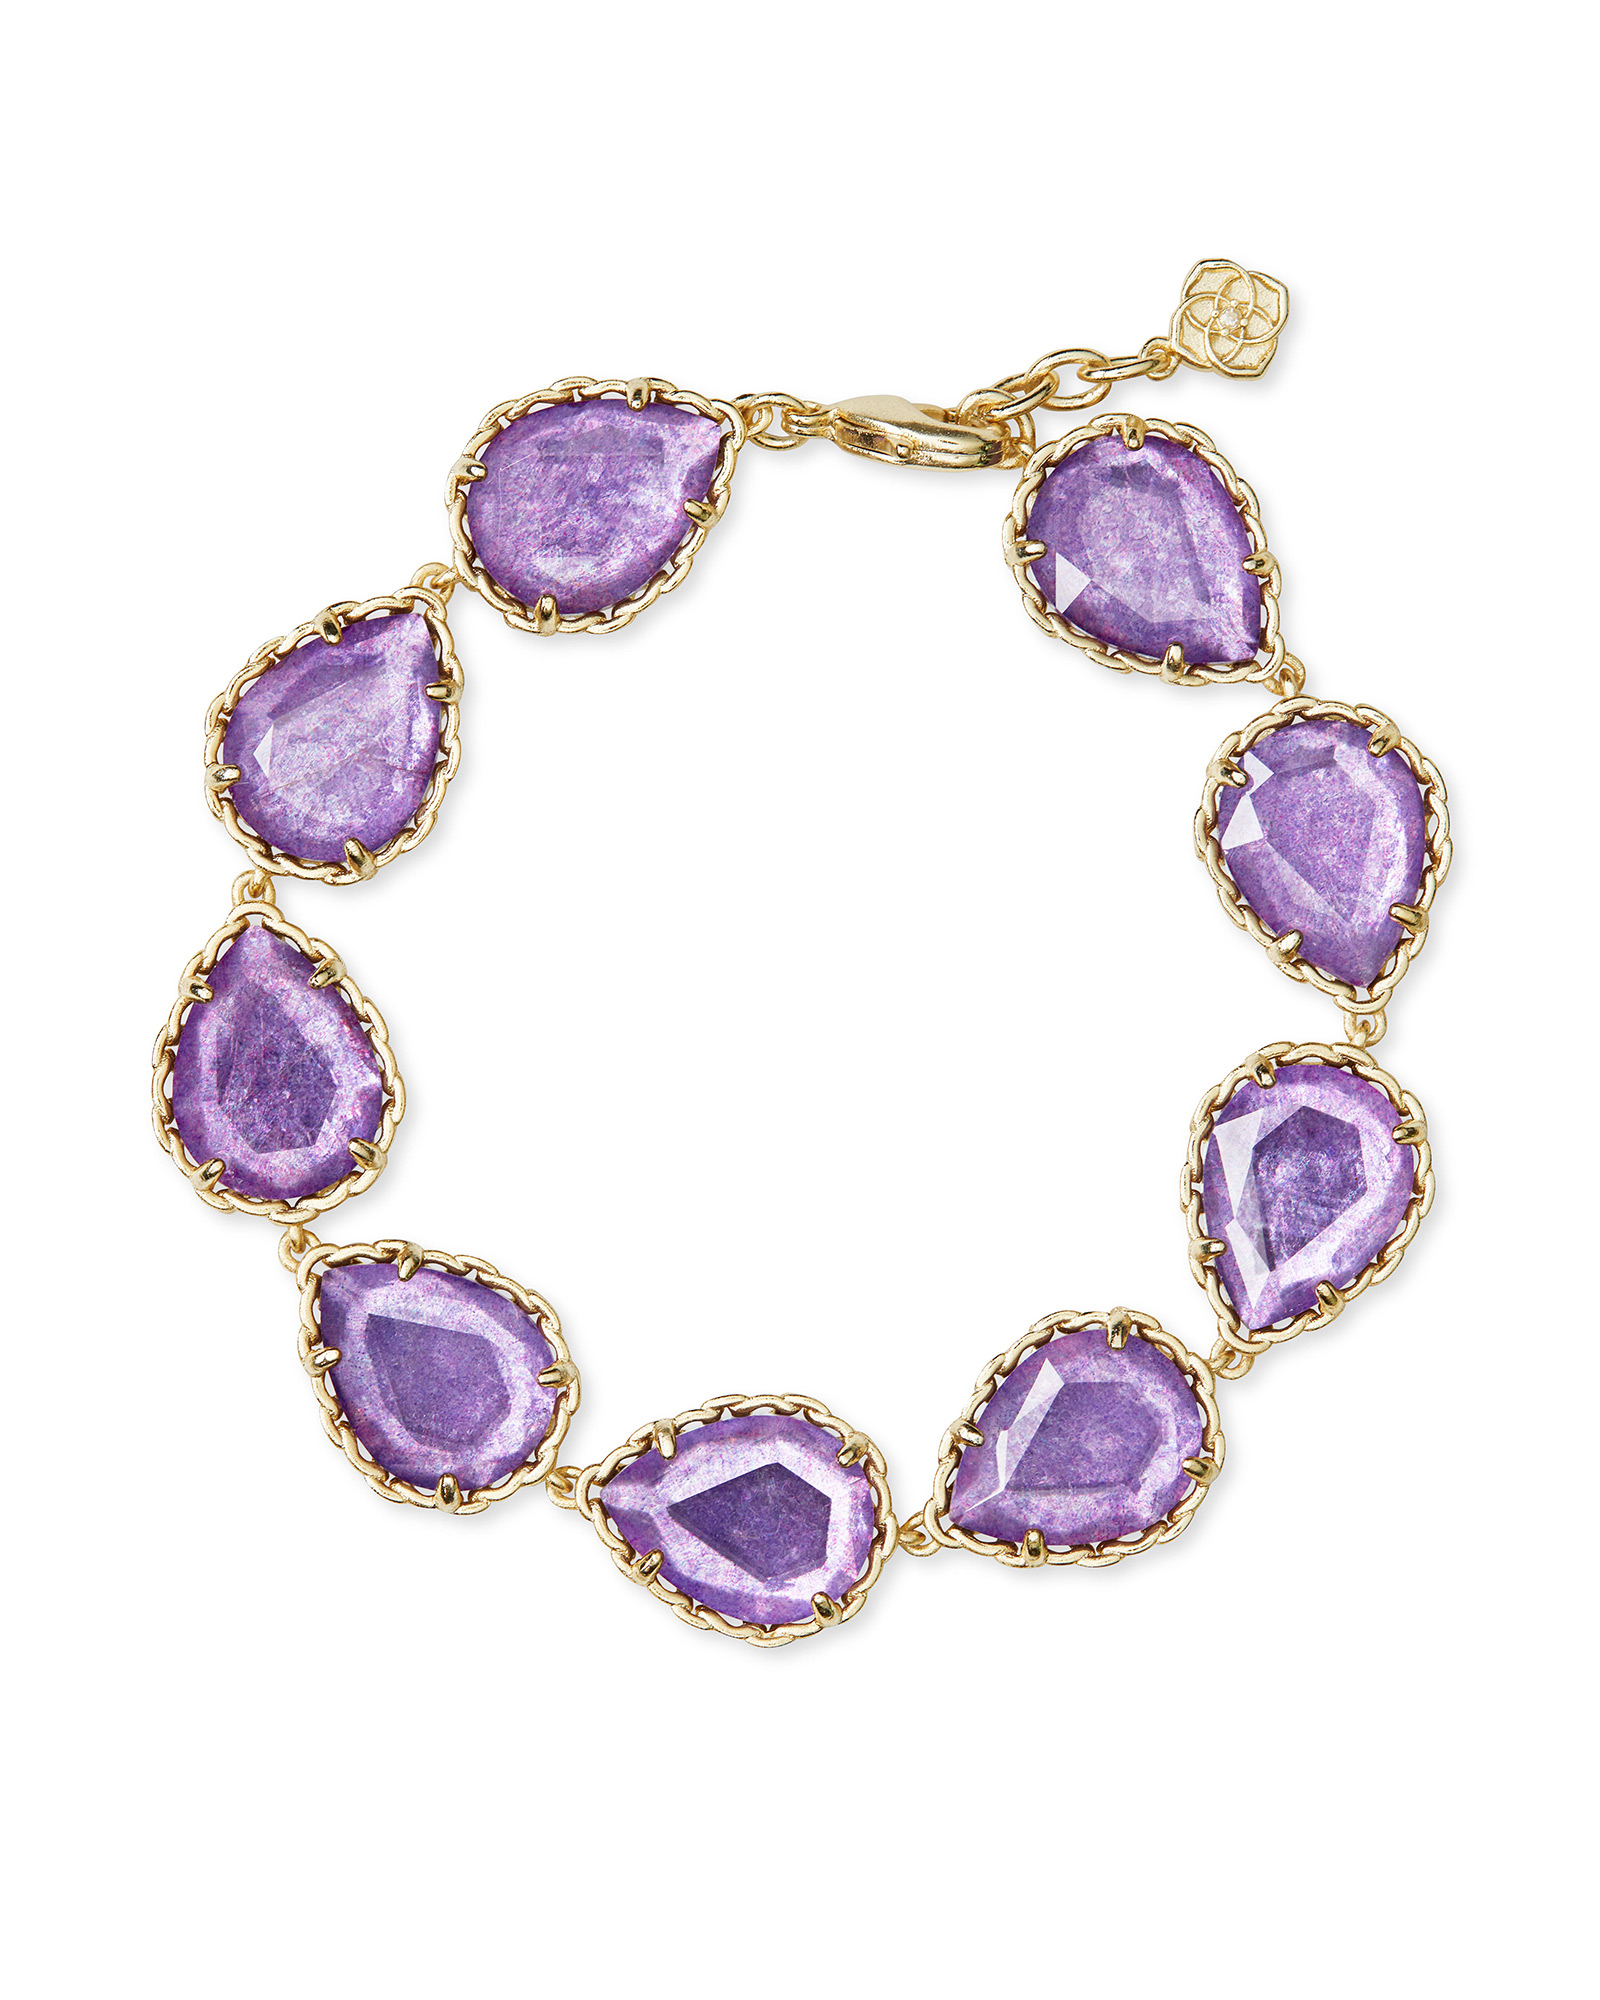 Kenzie Gold Link Bracelet In Purple Mica